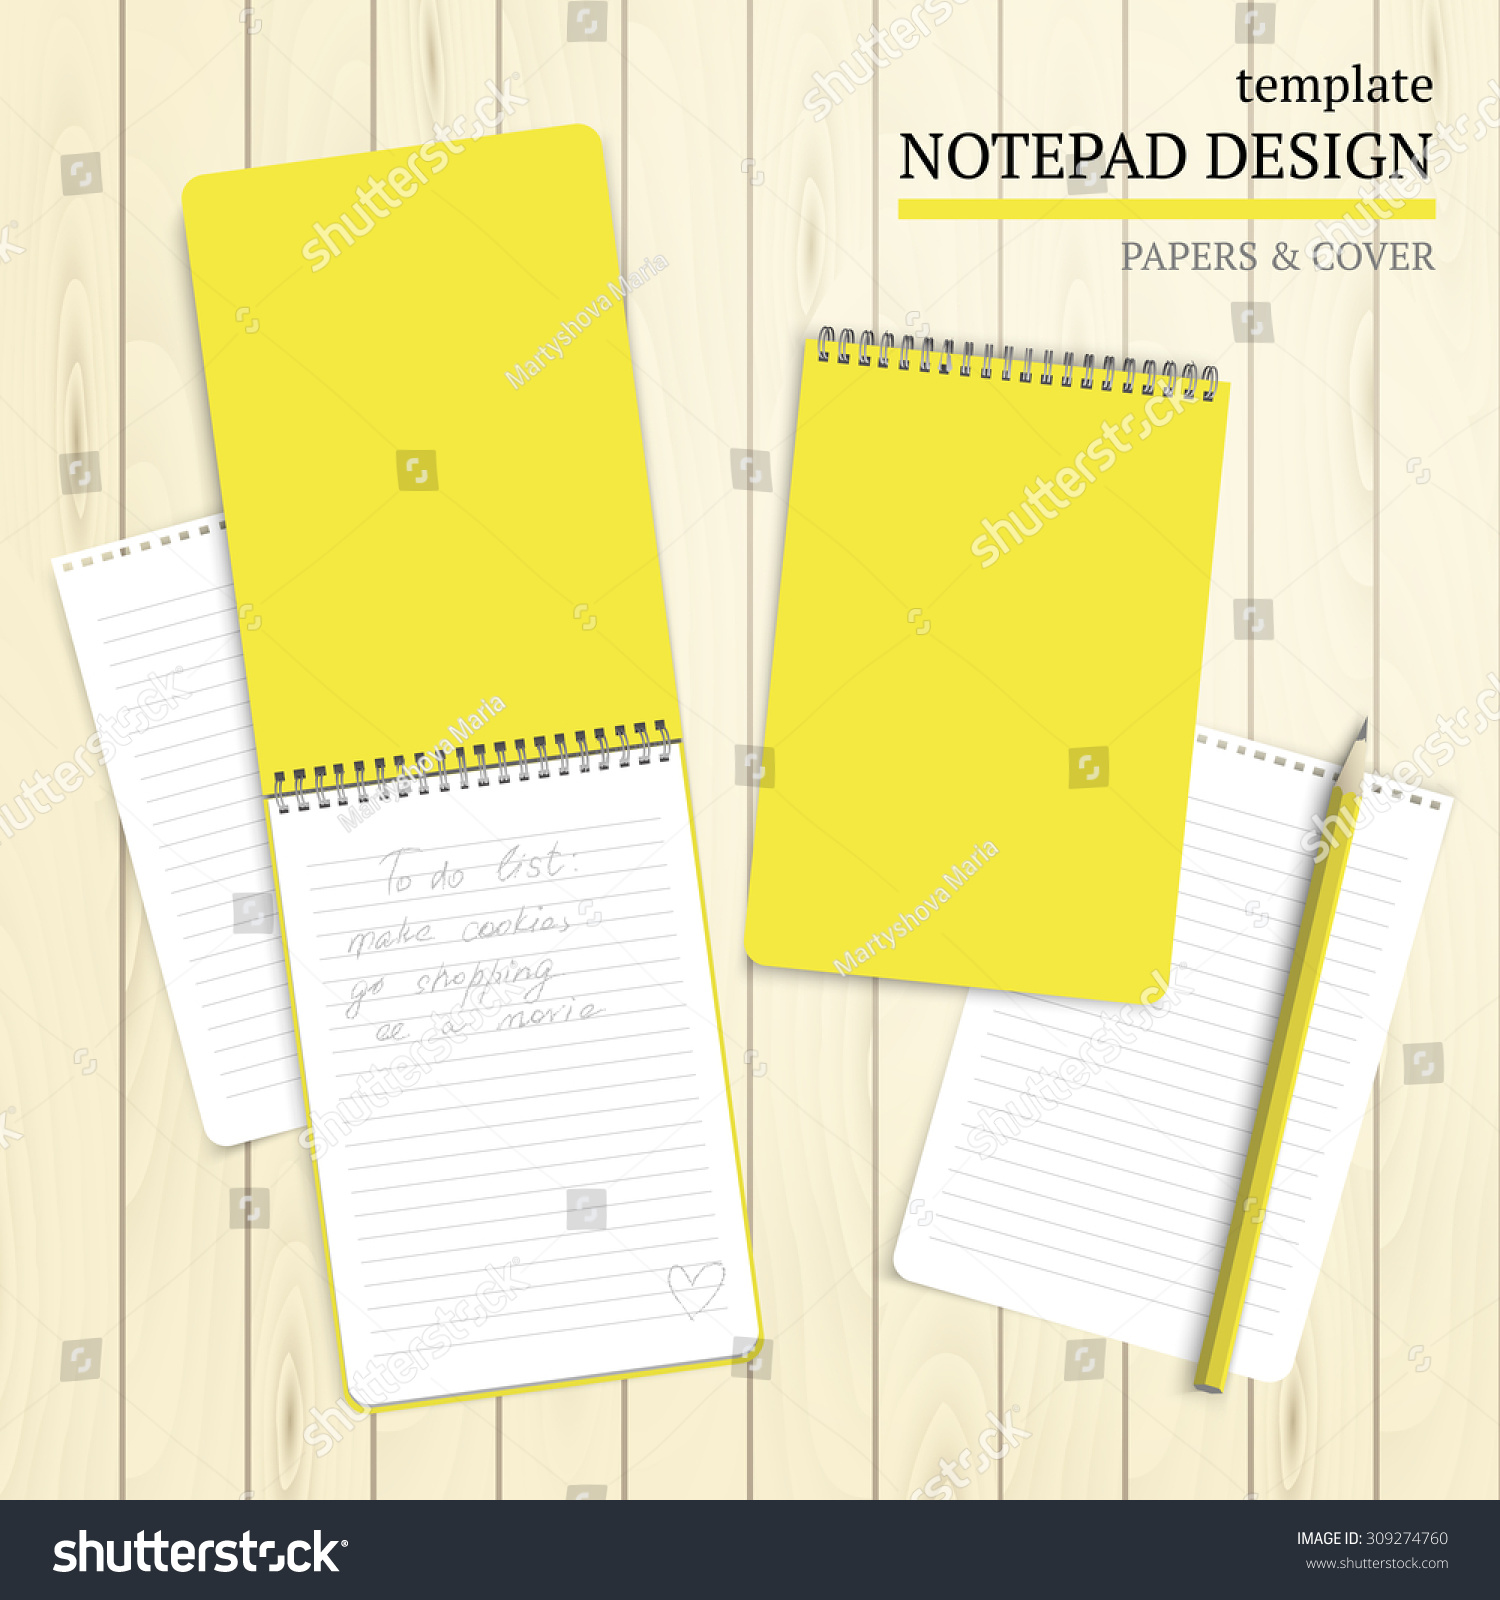 Template Notepad Design Cover Papers Stock Vector Royalty Free